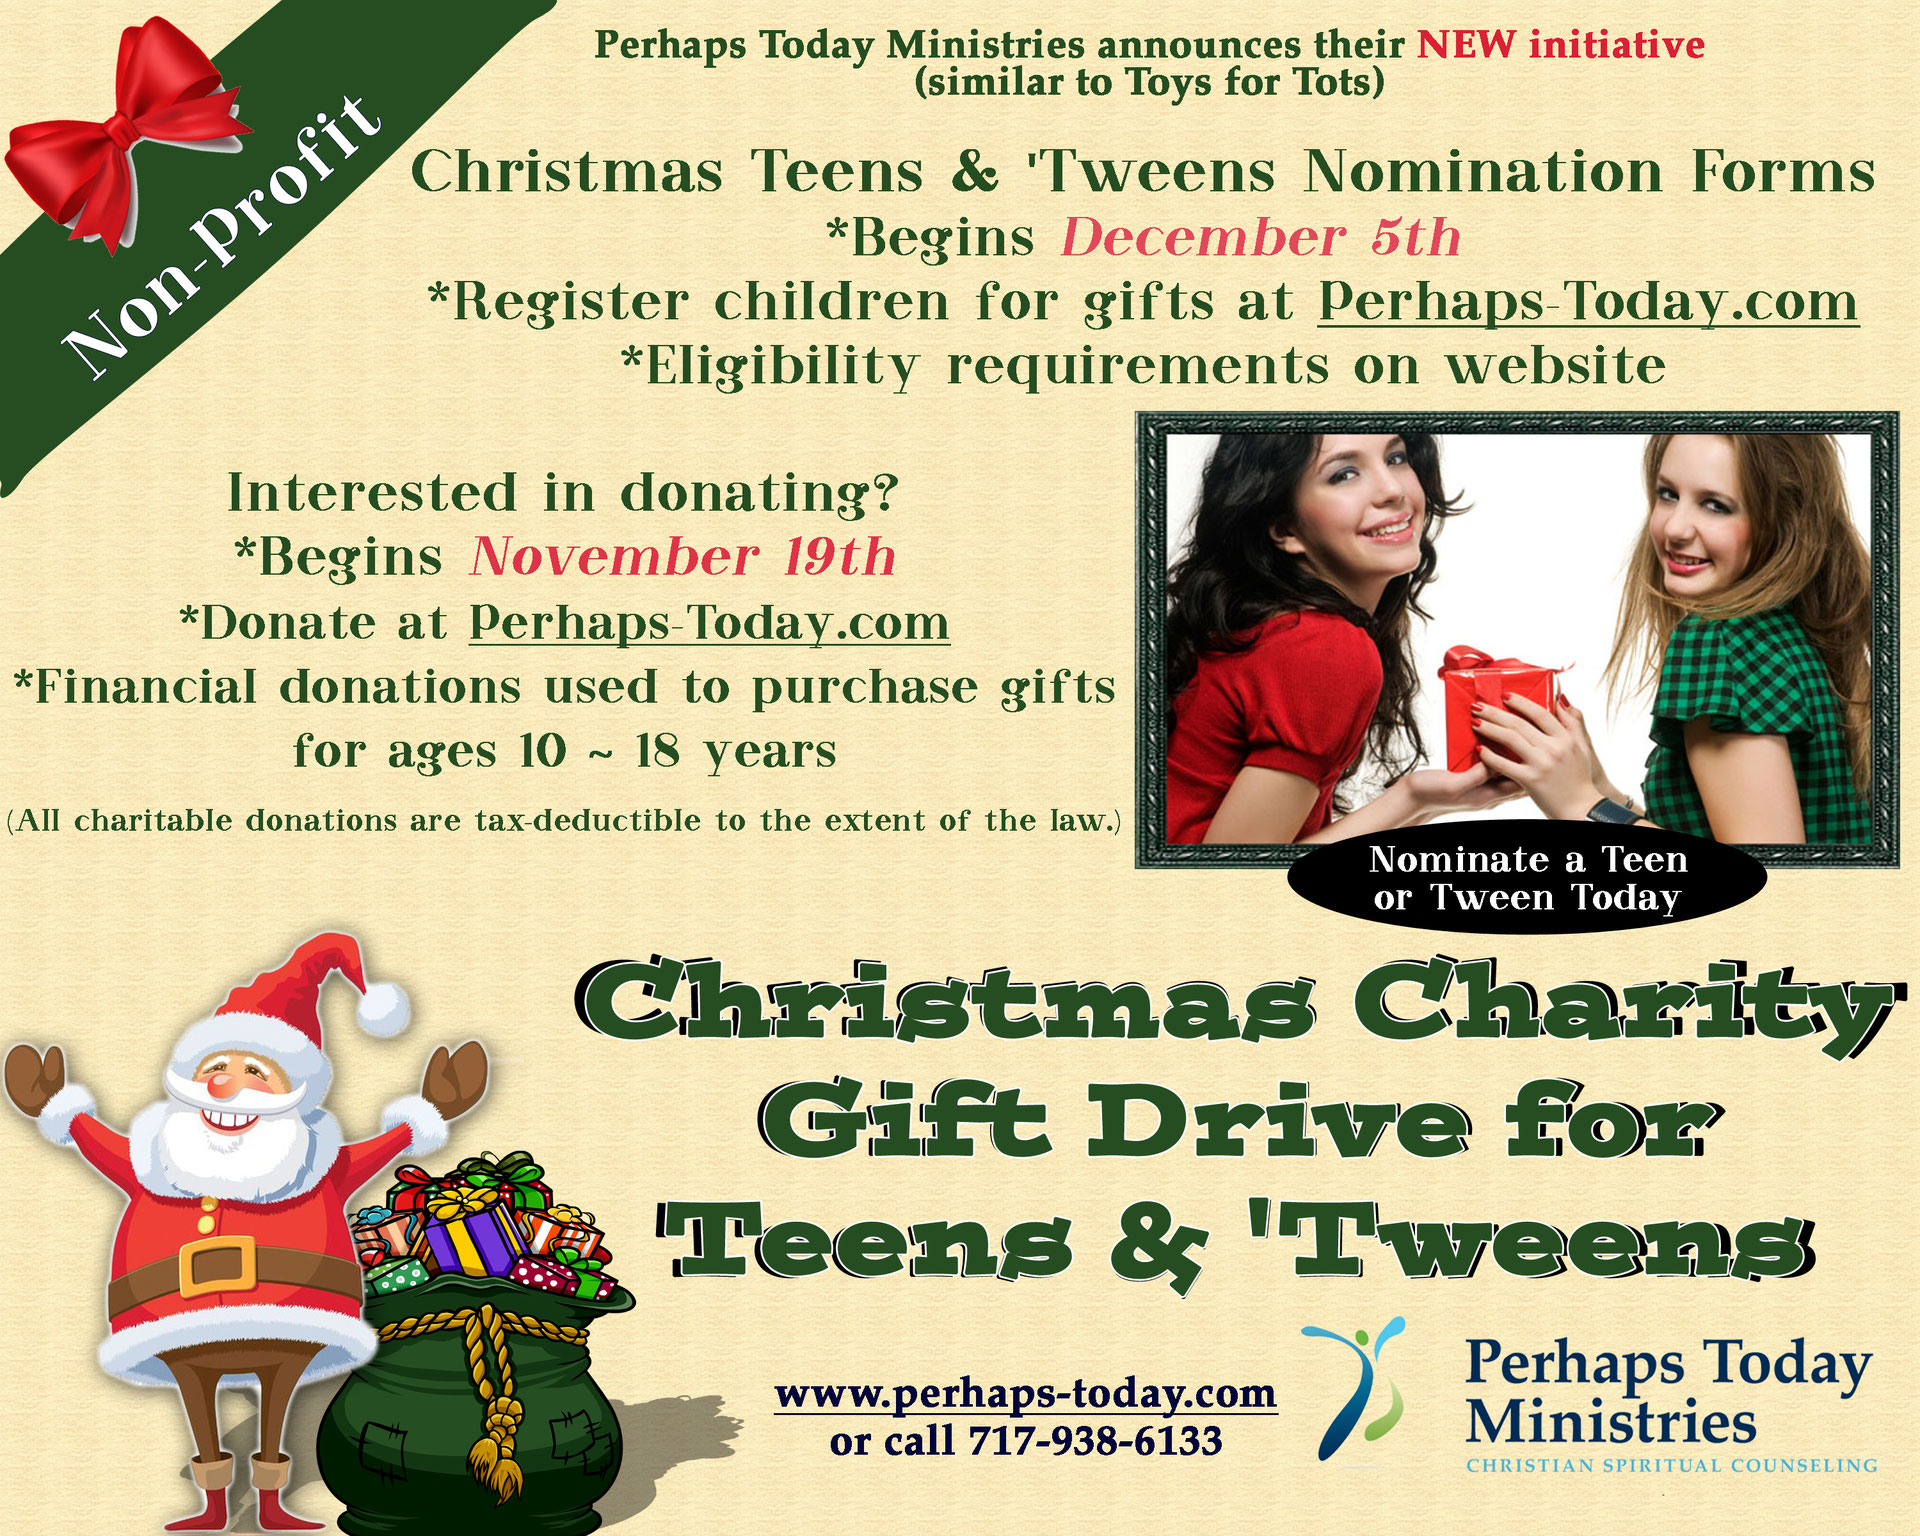 Christmas Teens and 'Tweens Charity Gift Drive - Perhaps Today Ministries -  Christian Spiritual Counseling by Donation